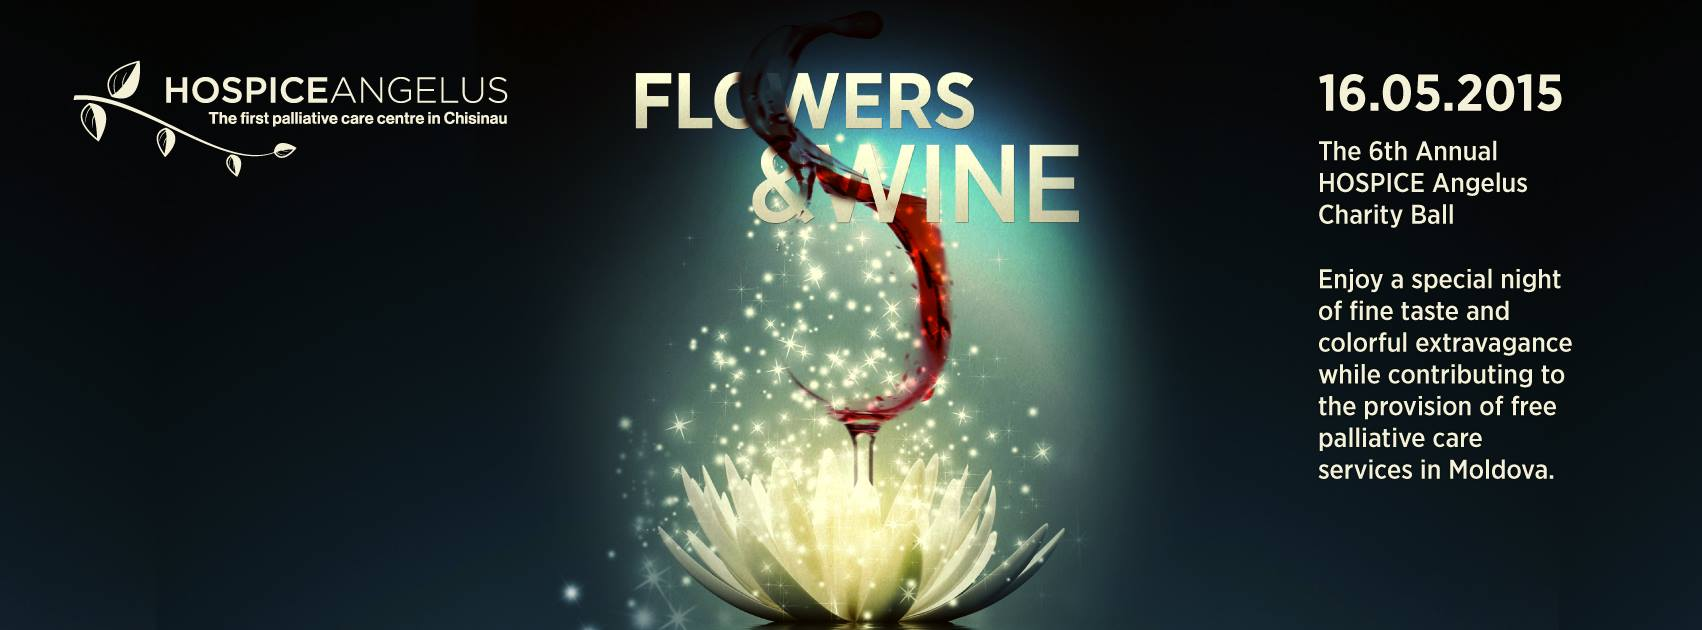 Flowers & Wine - THE 6TH ANNUAL HOSPICE ANGELUS CHARITY BALL